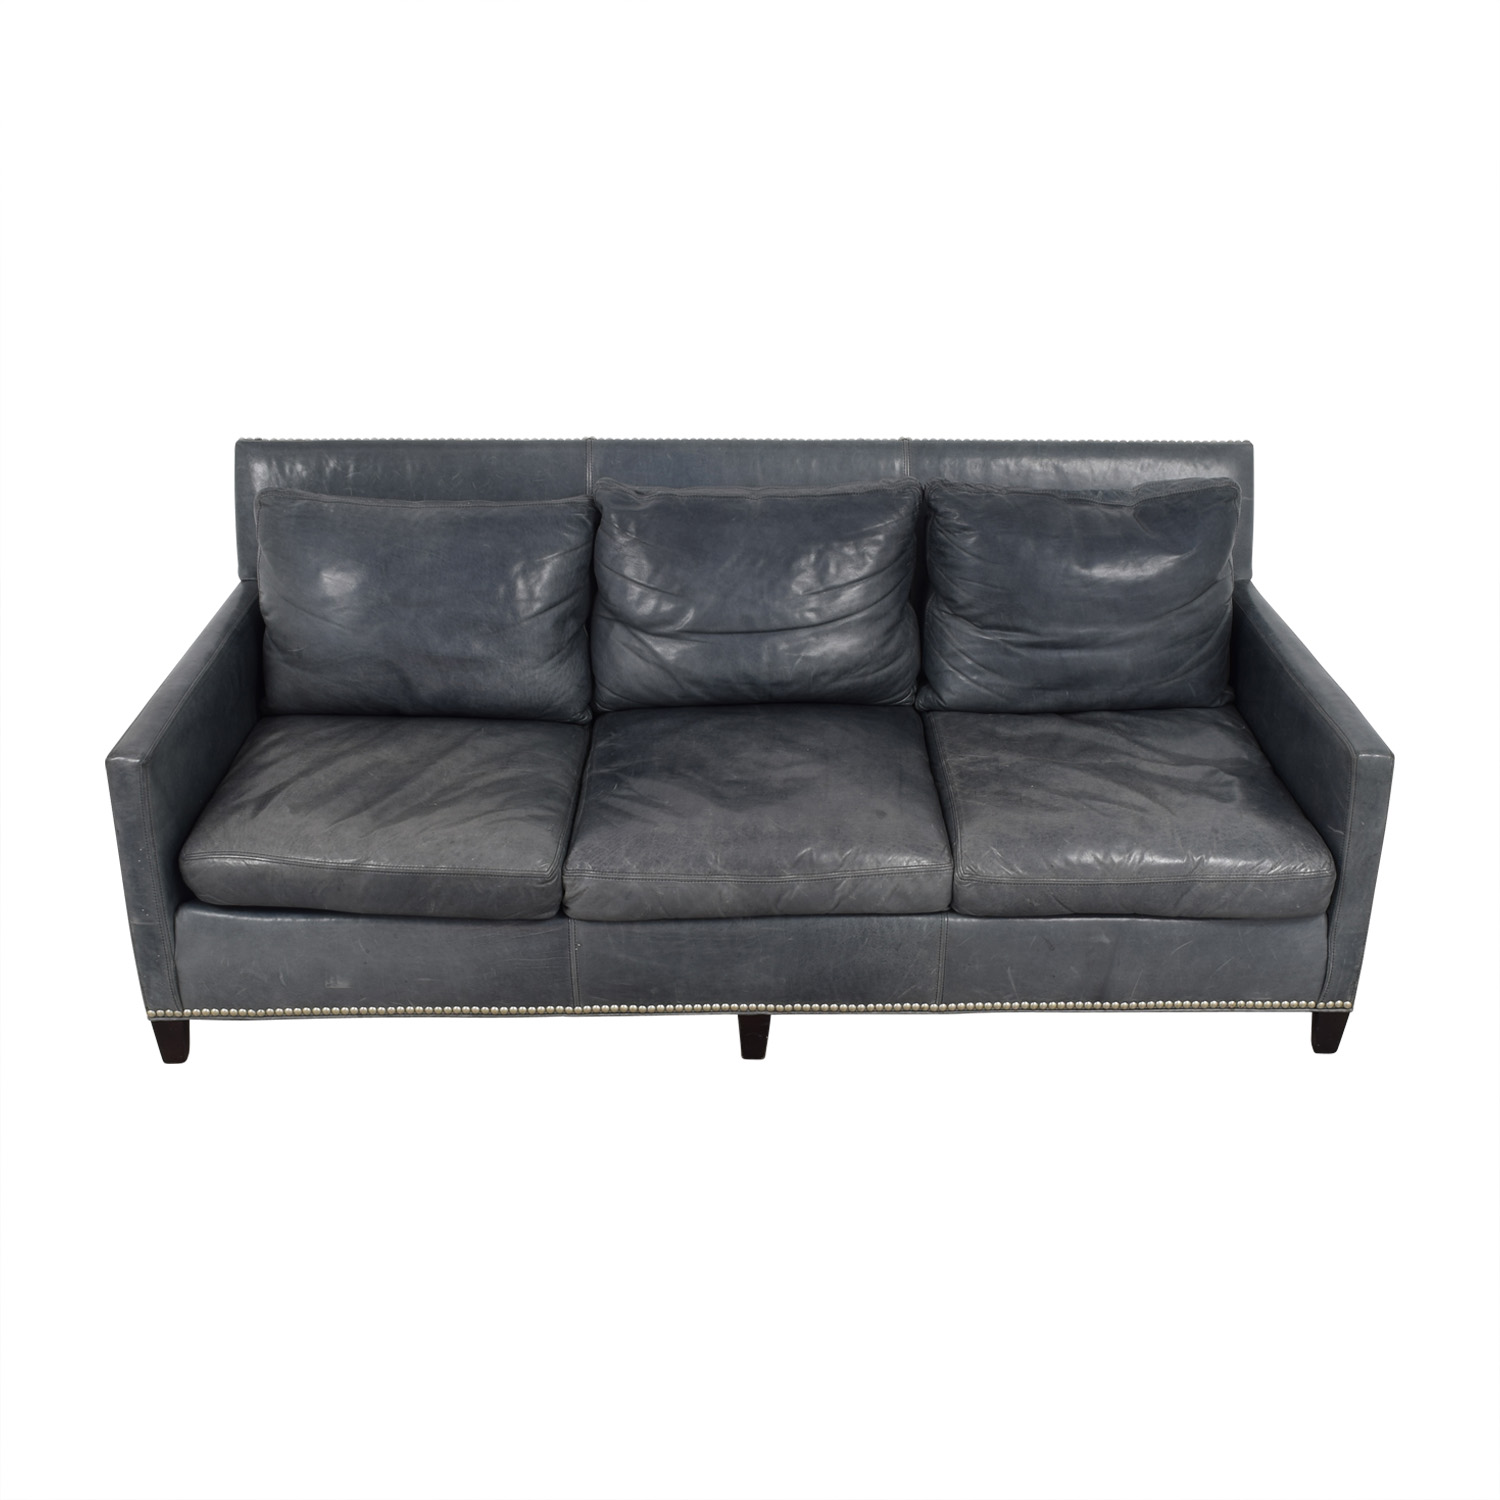 Lillian August Lillian August Maxwell Teal Leather Sofa nyc